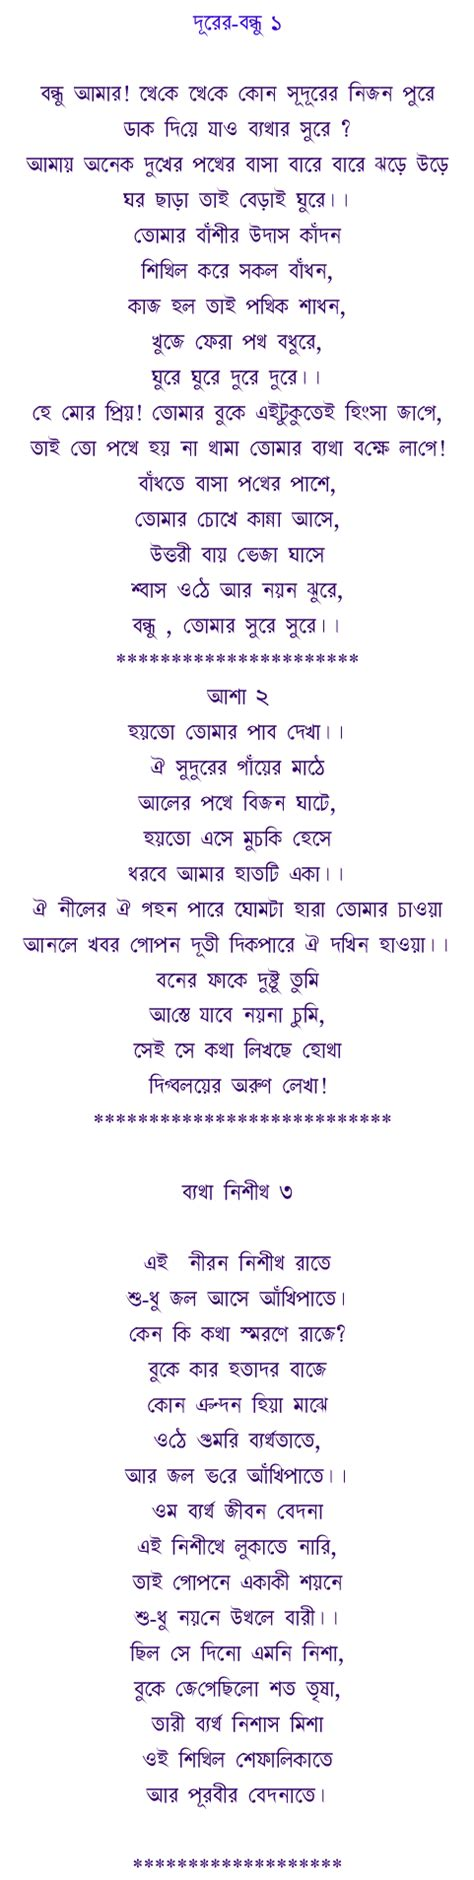 bangla poem by rabindranath tagore knowledge